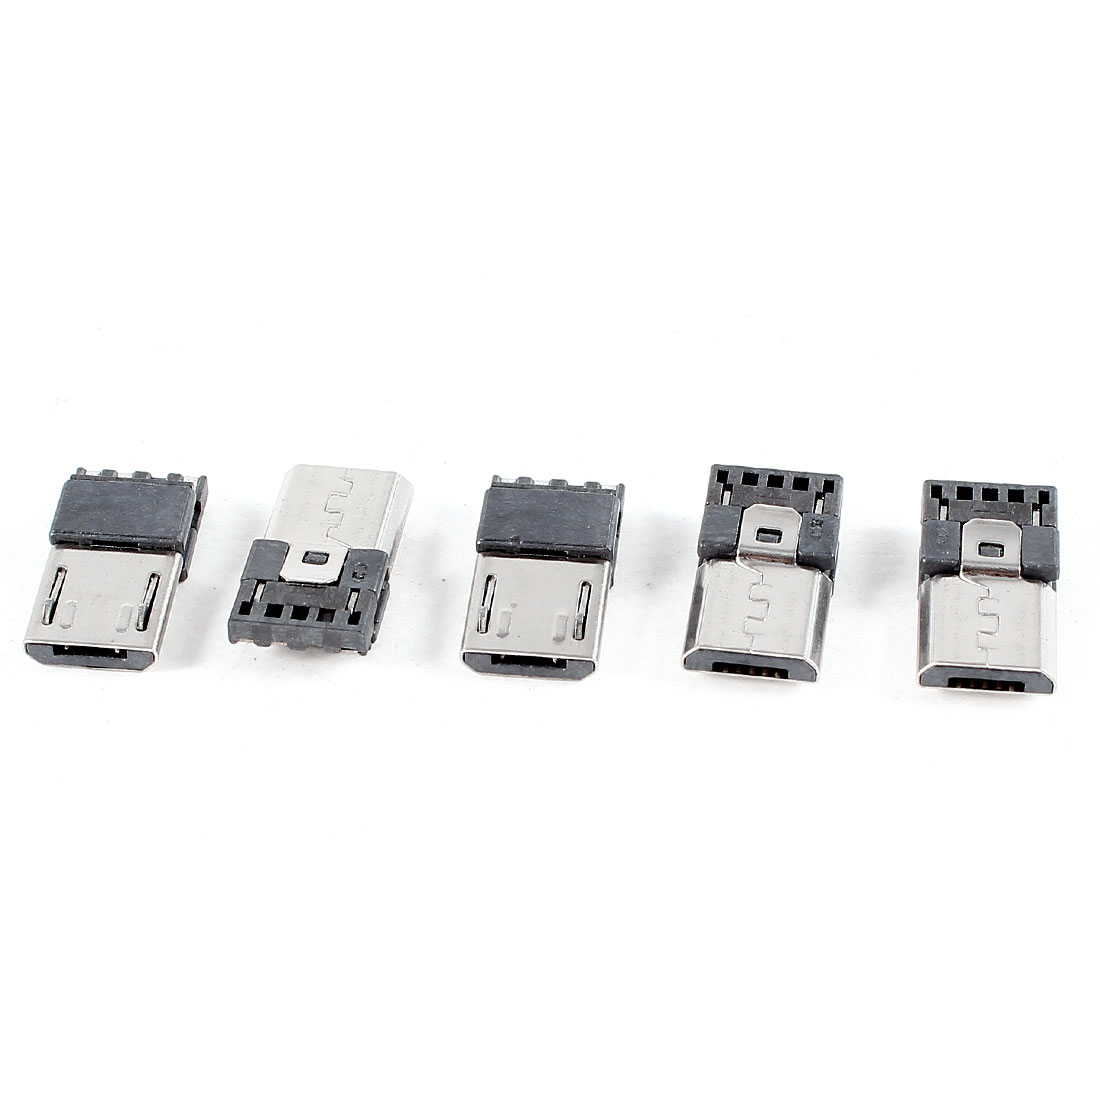 5pcs Male Micro USB Type B 5-Pin PCB Socket Connector Silver Tone Black